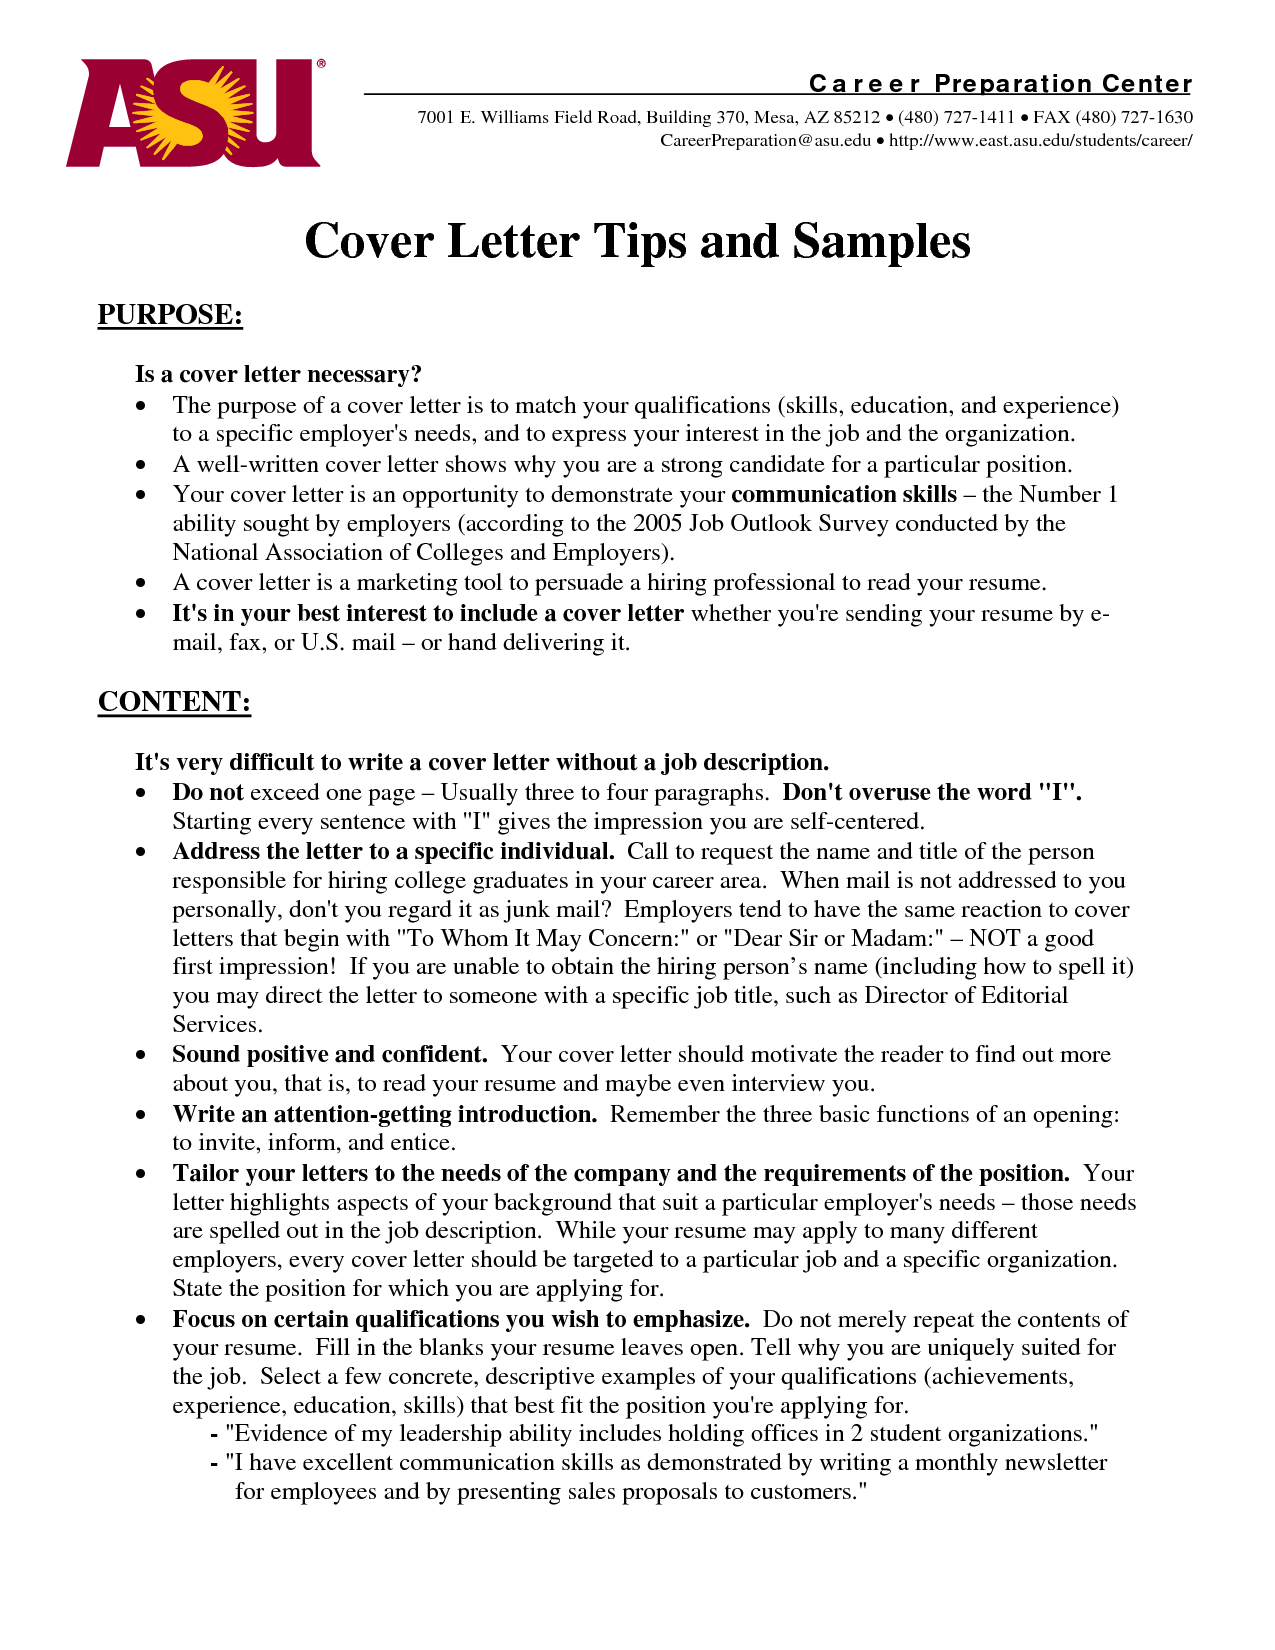 jimmy sweeney cover letter examples quality - Google Search ...